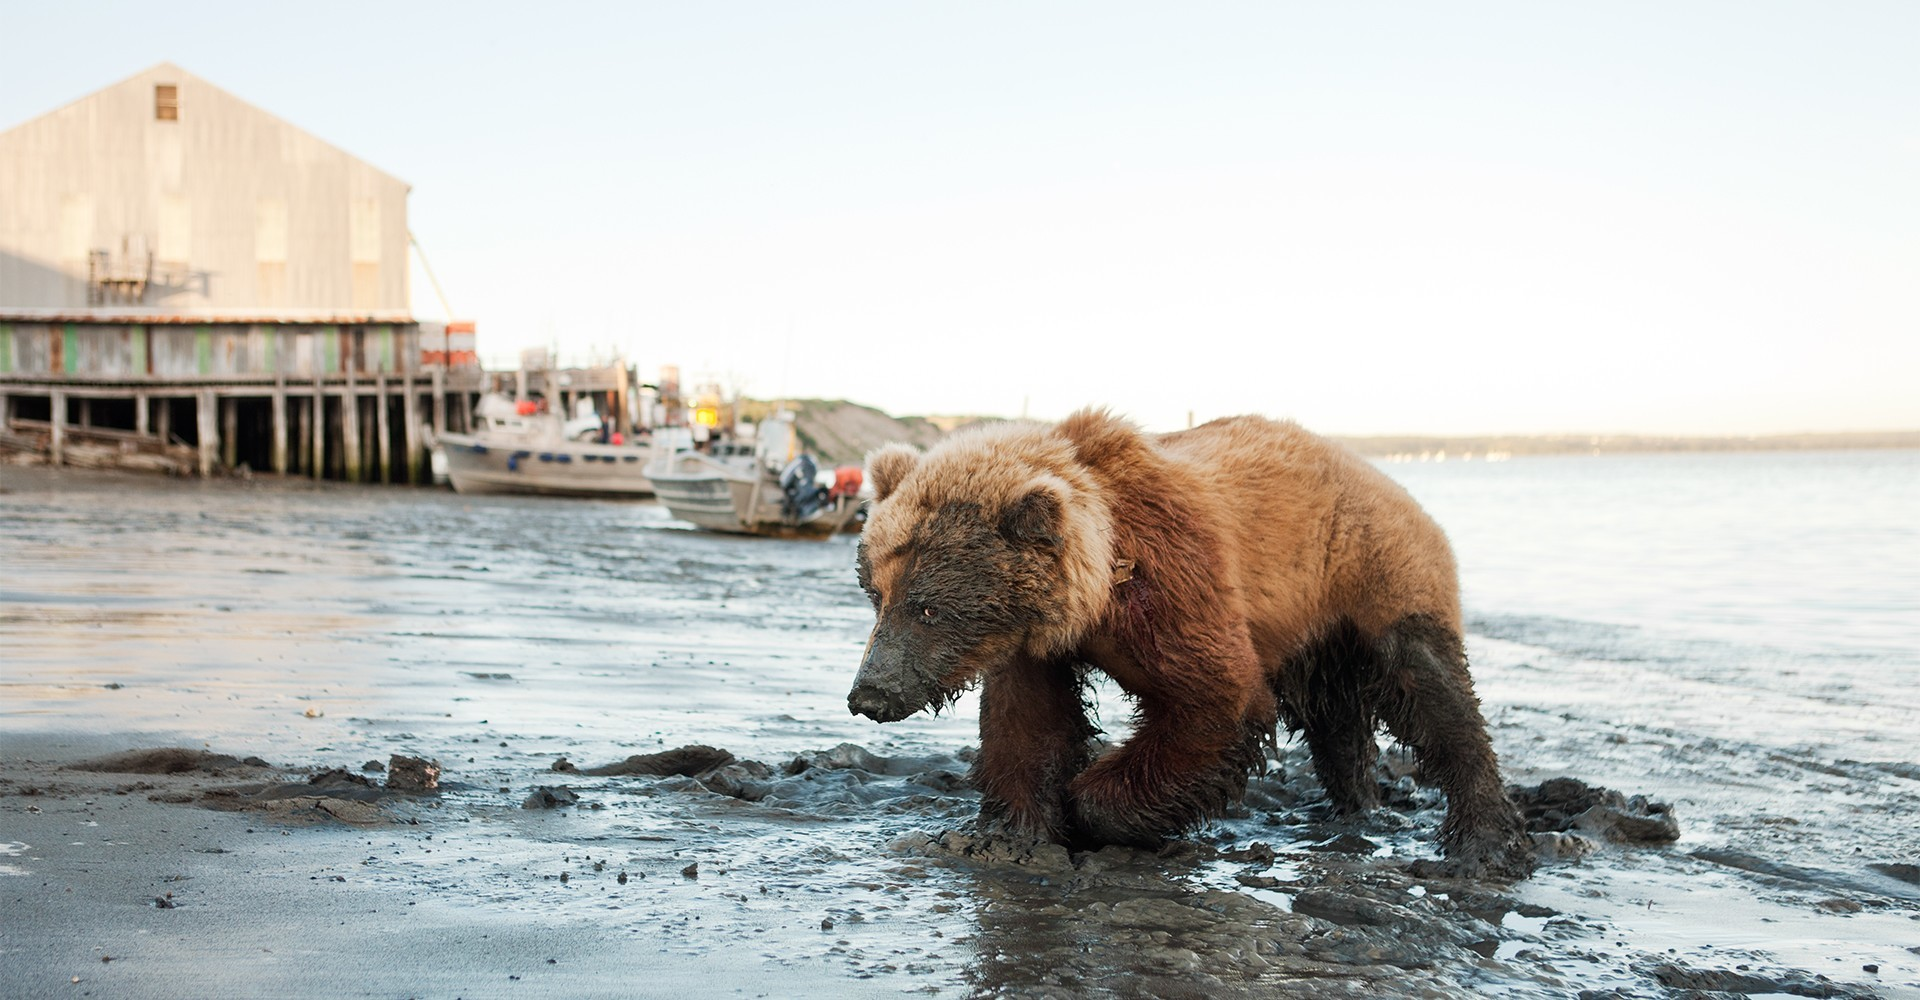 Wounded Bear at Red Salmon Cannery - Bristol Bay, Alaska